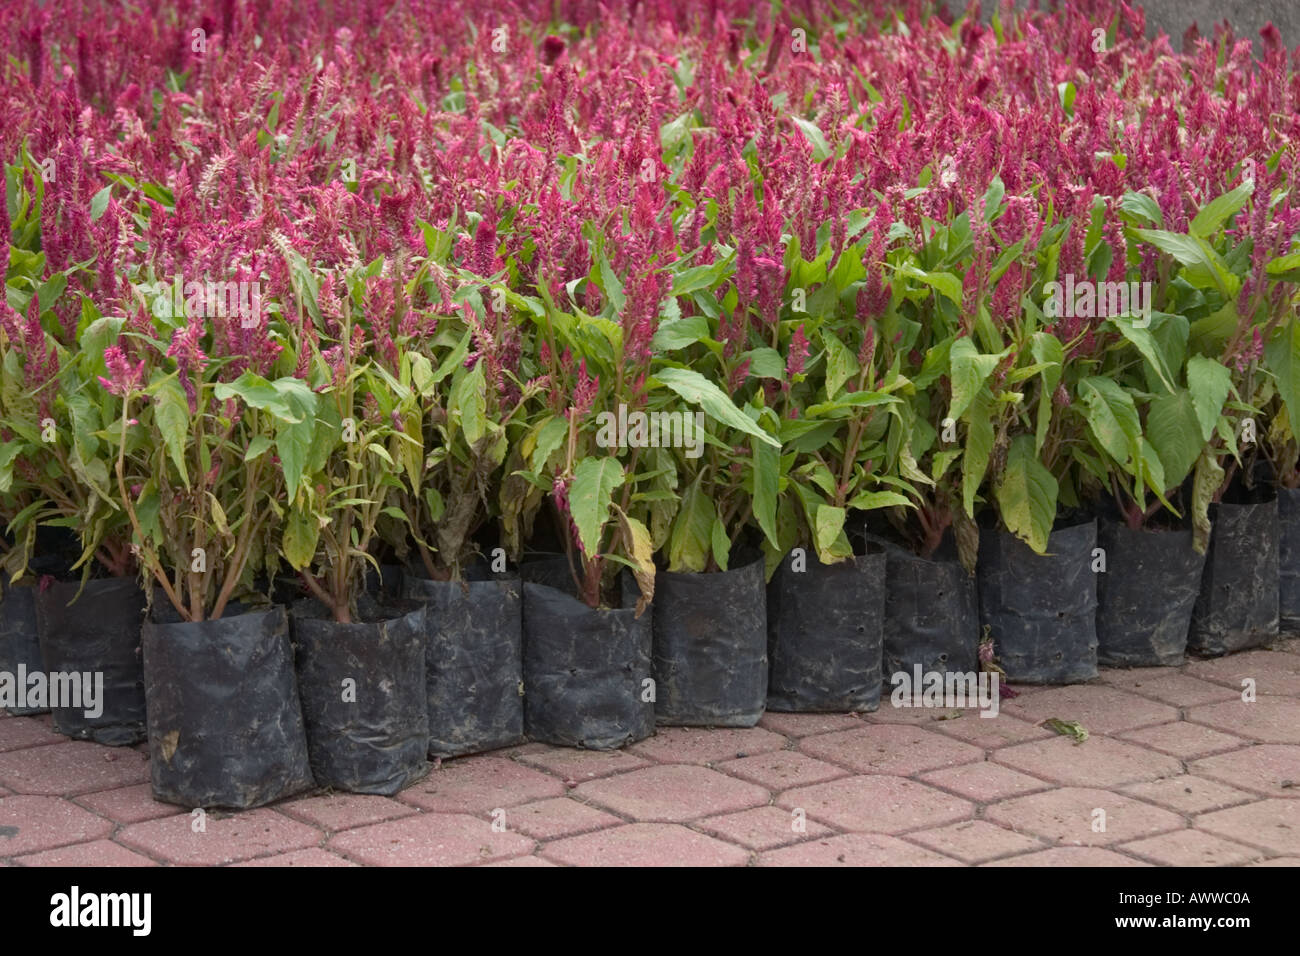 Blooming Red Celosia Flowers In Plastic Containers Cockscombs Stock